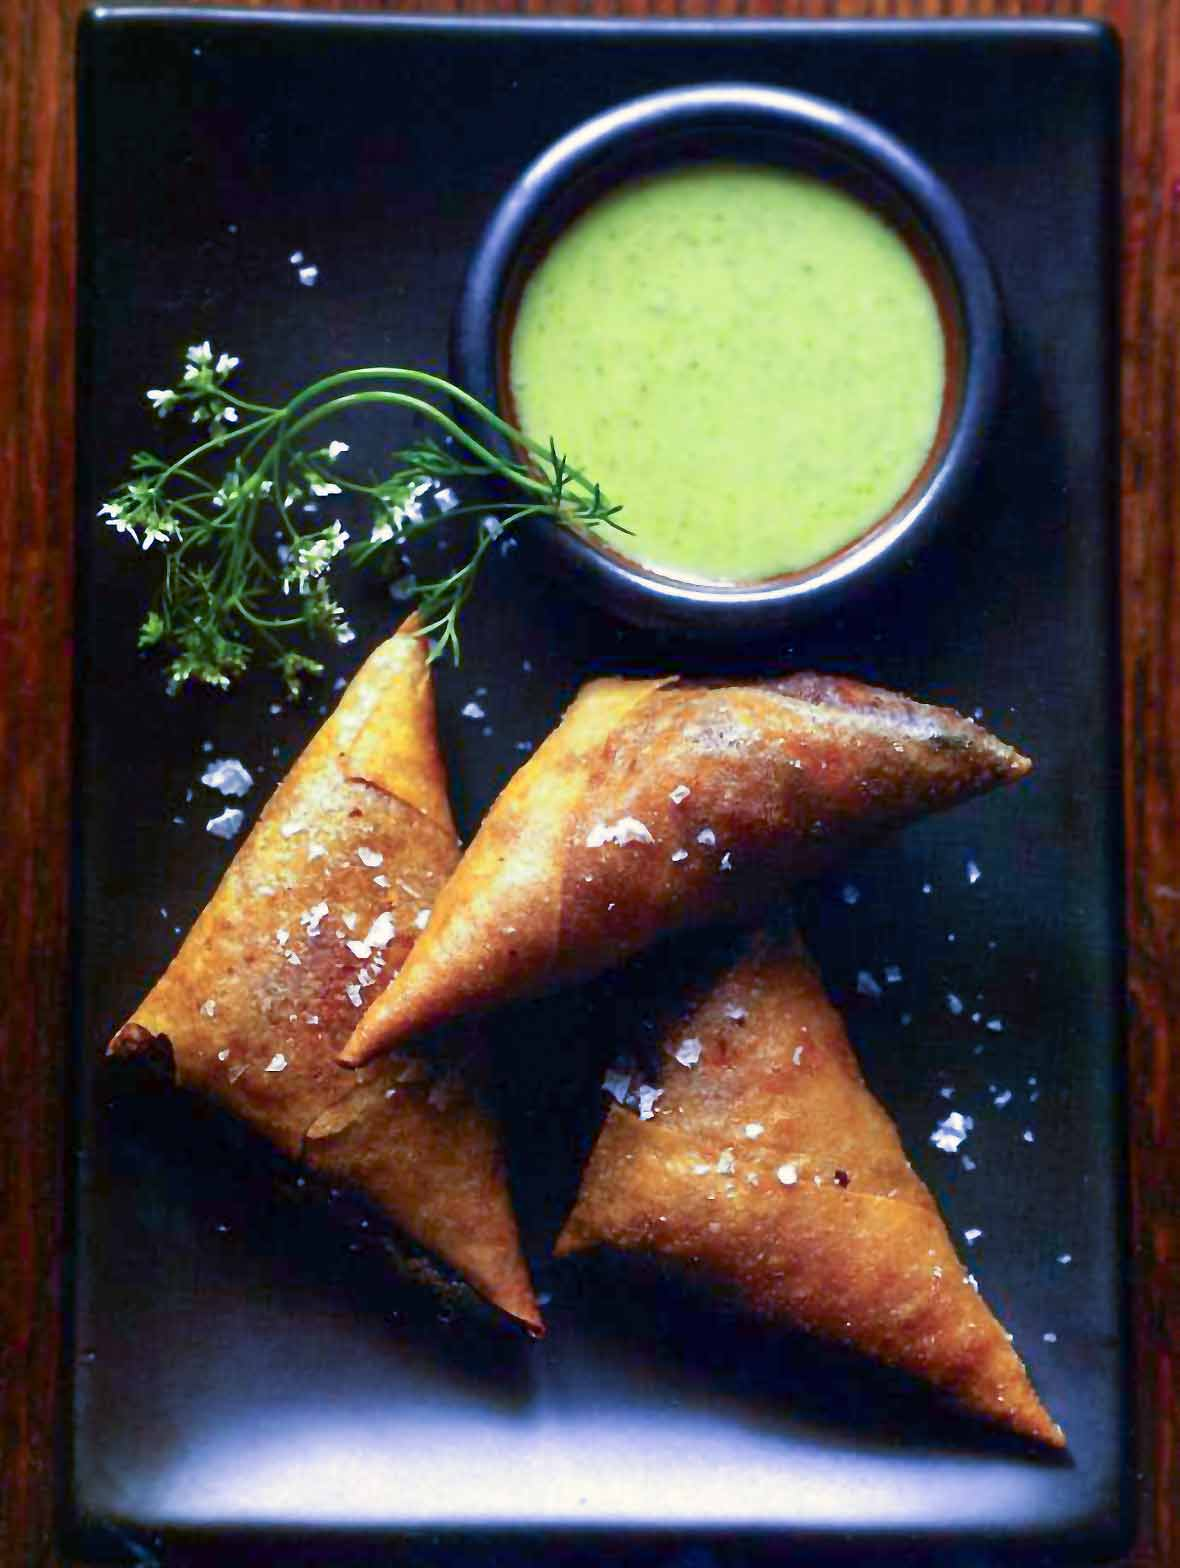 Three chicken samosas on a black plate with cilantro-yogurt dip